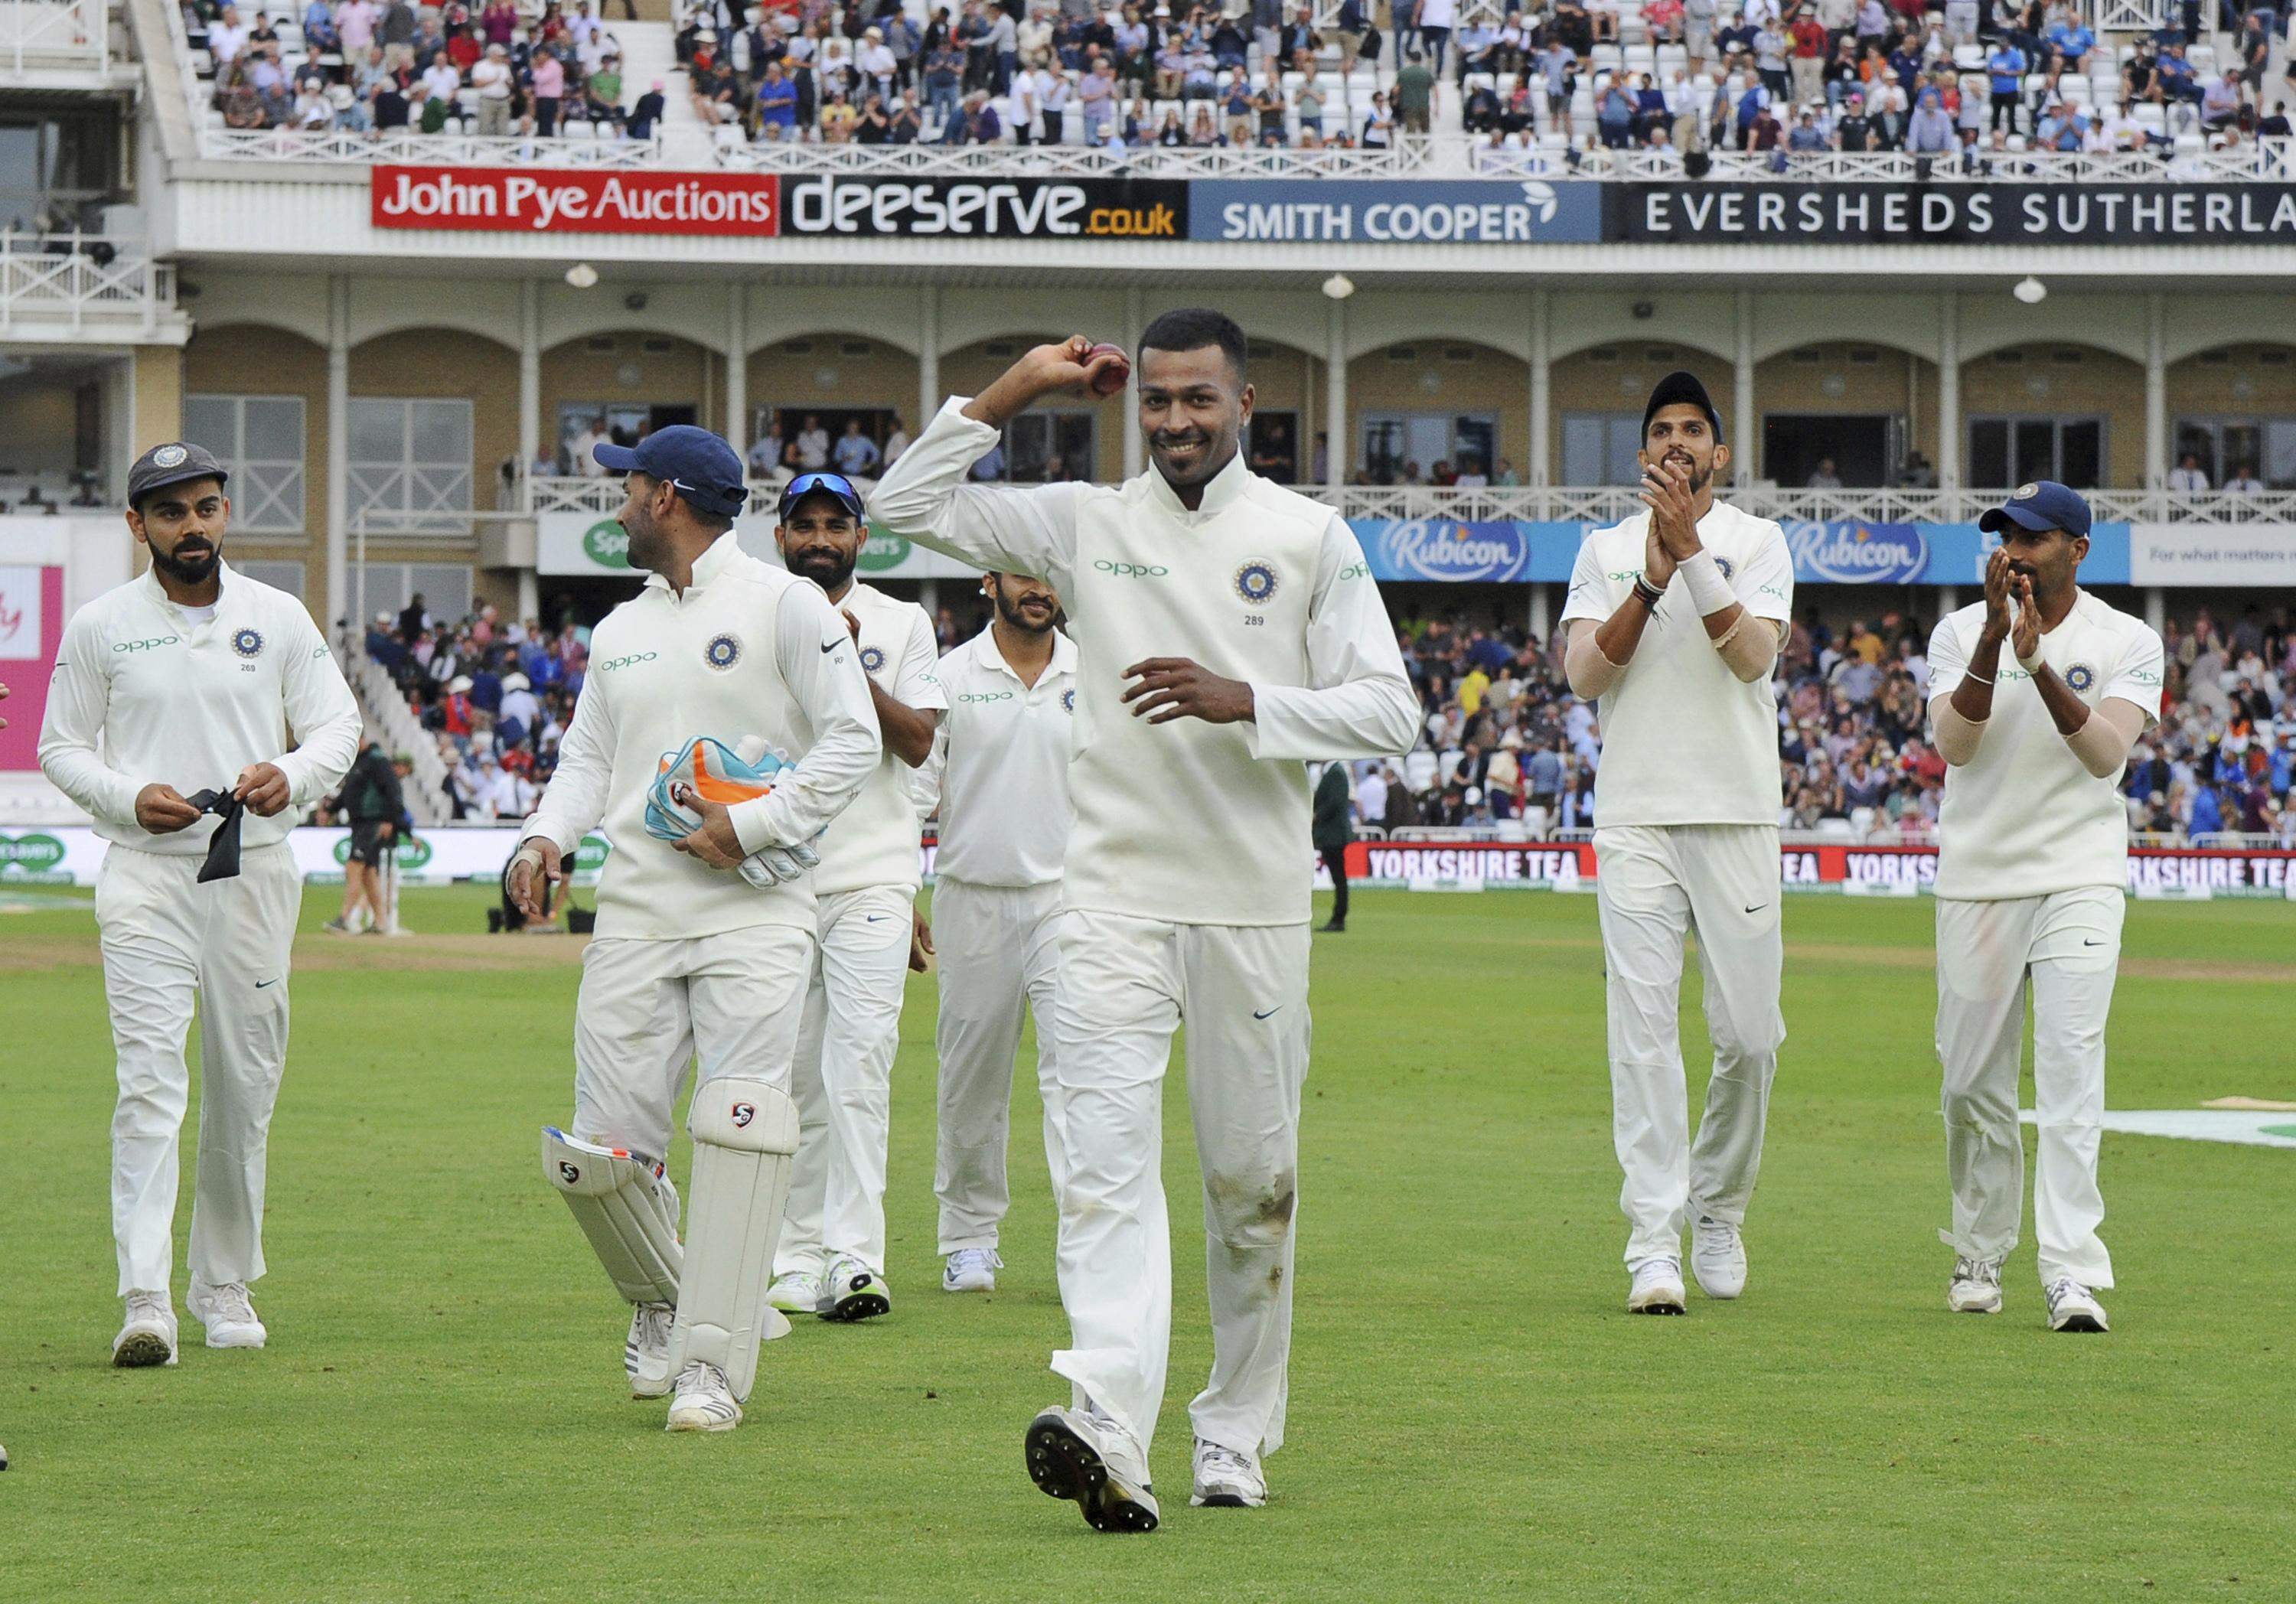 Hardik Pandya took five wickets in just 29 deliveries, his first five-wicket Test haul